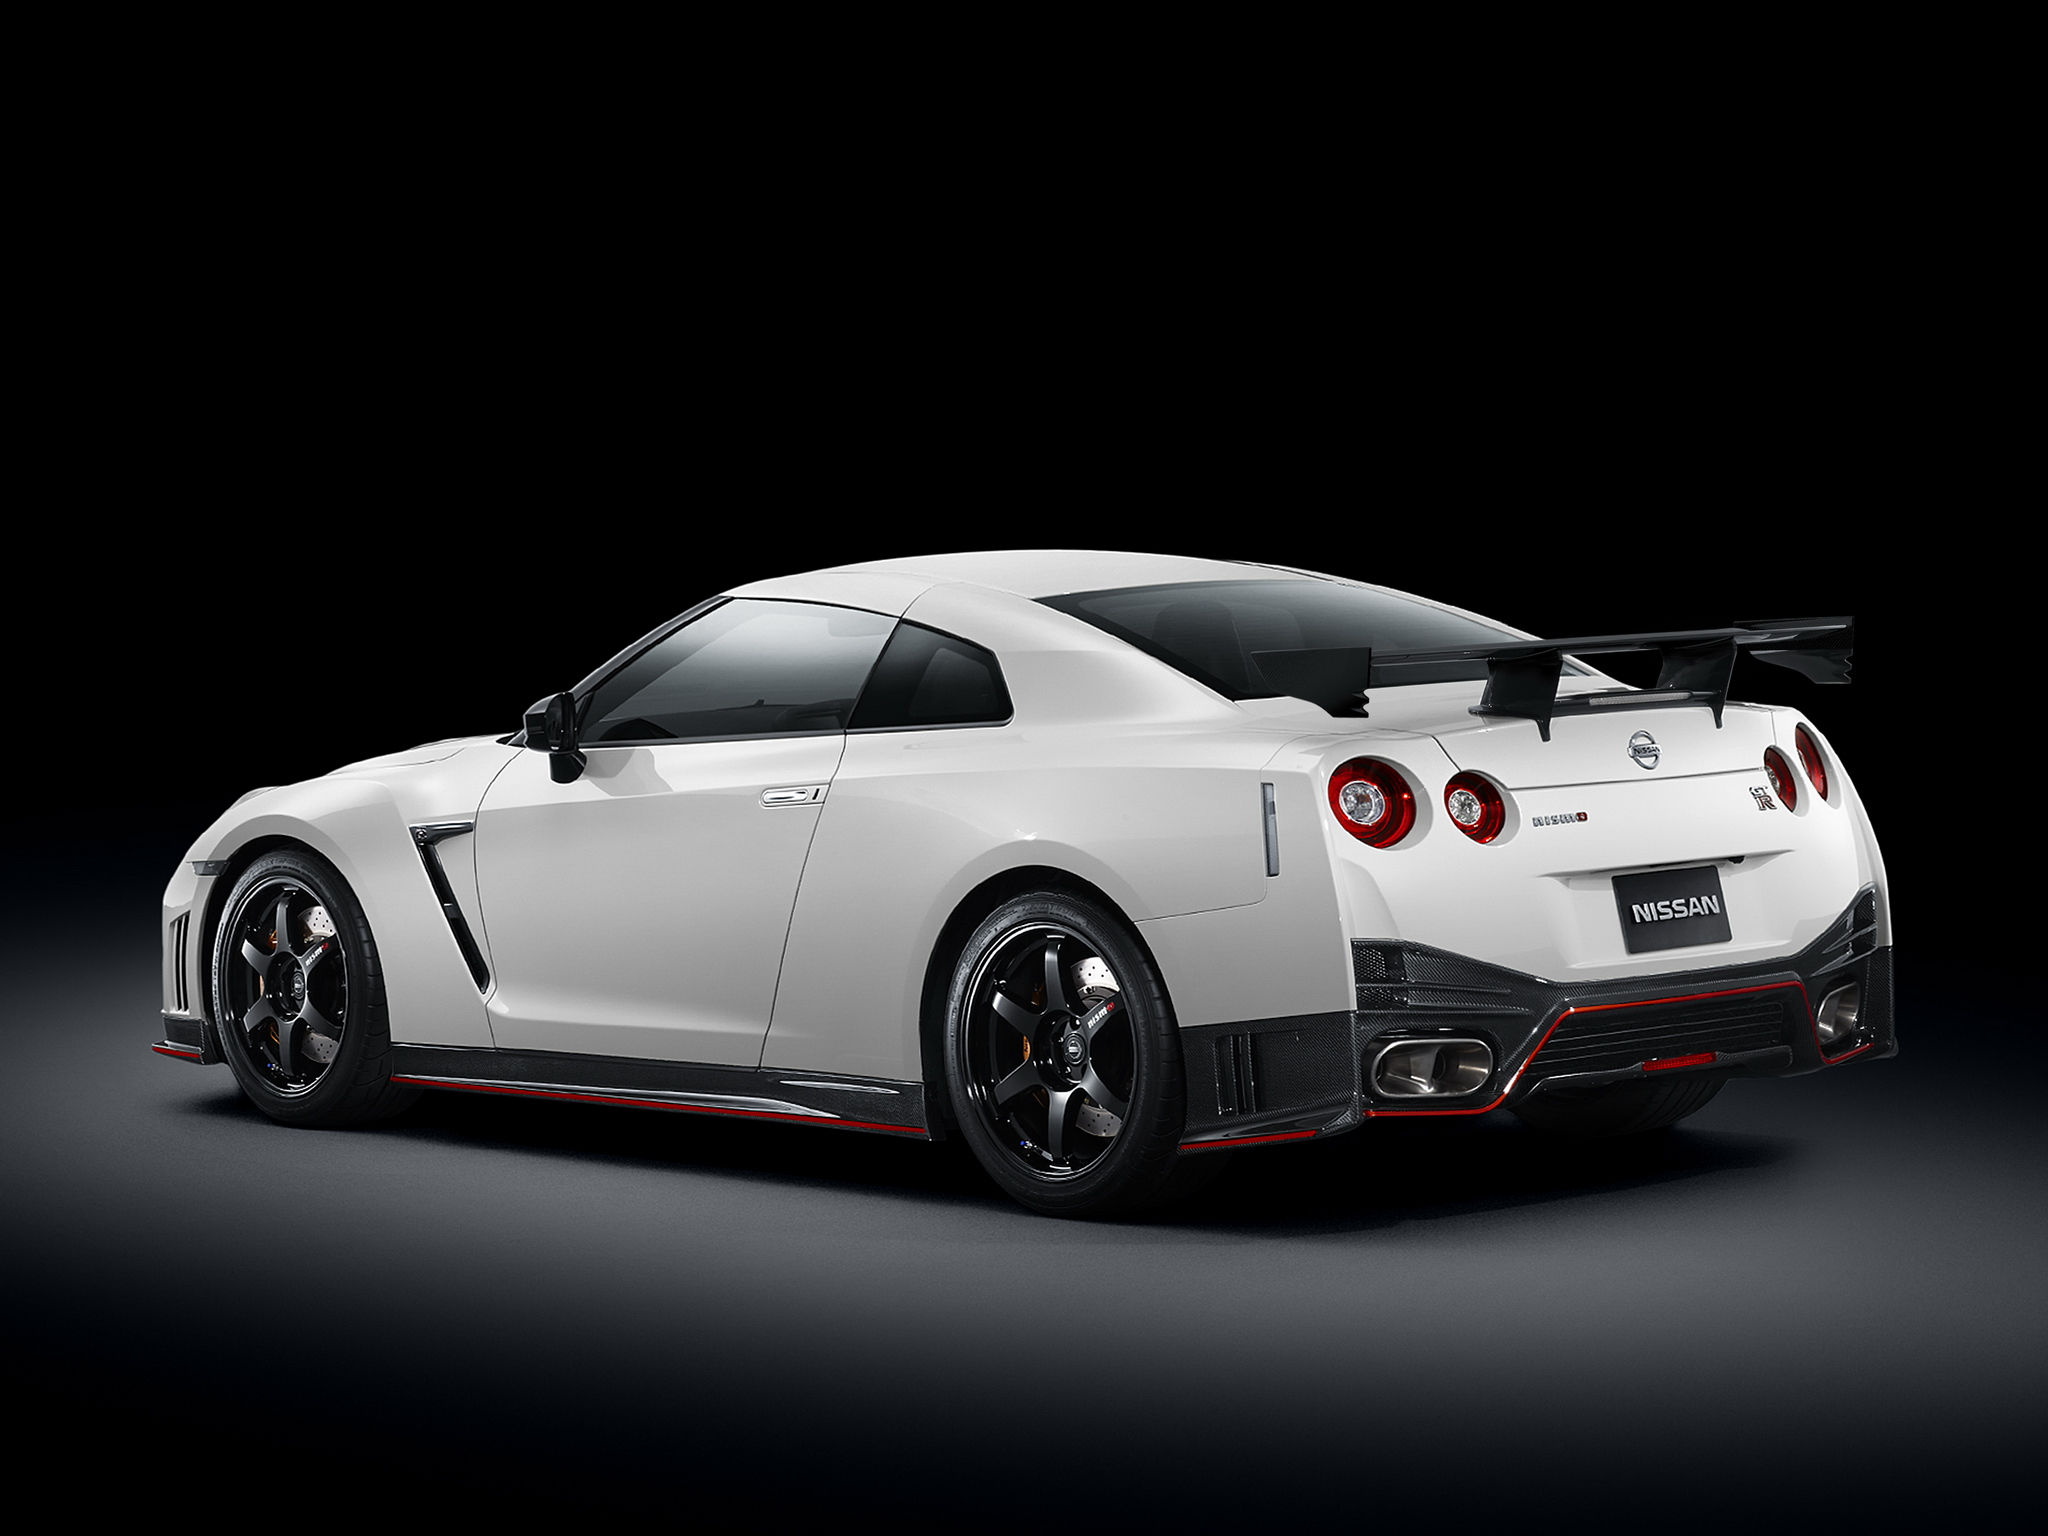 2014 nismo nissan gtr r35 supercar t wallpaper 2048x1536 194028 wallpaperup. Black Bedroom Furniture Sets. Home Design Ideas